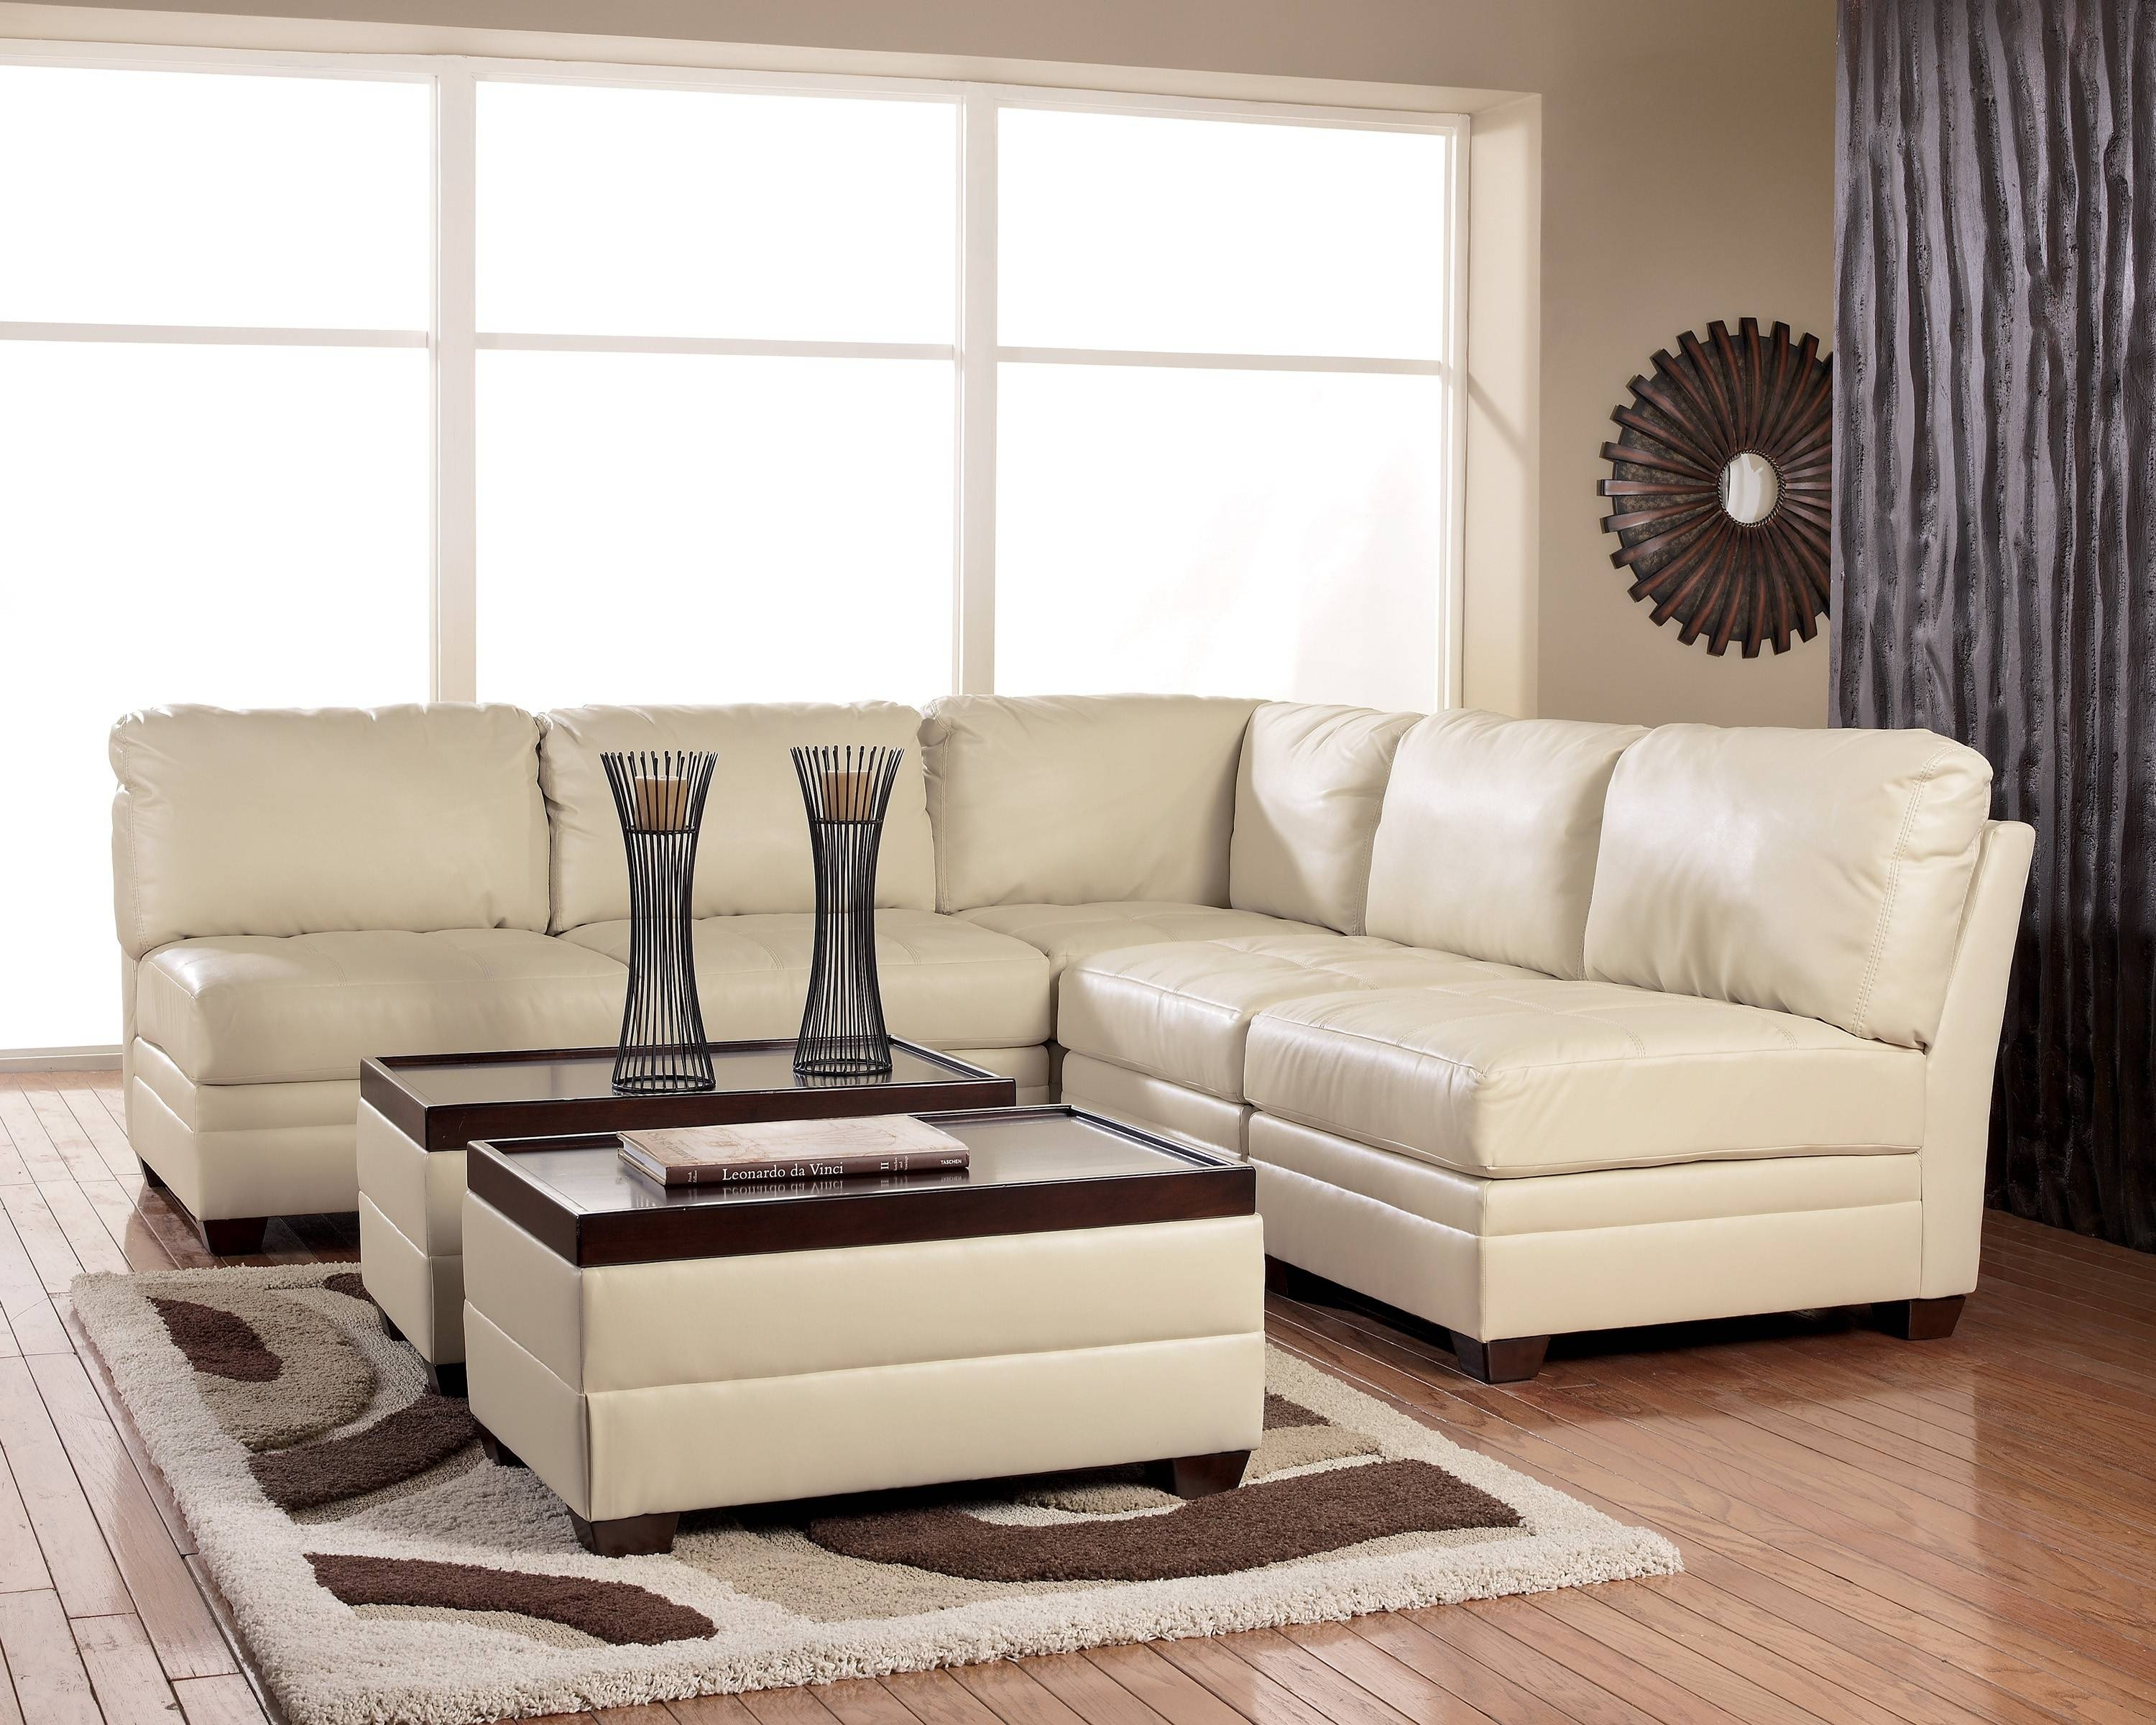 25 Best Collection of Faux Leather Sectional Sofas